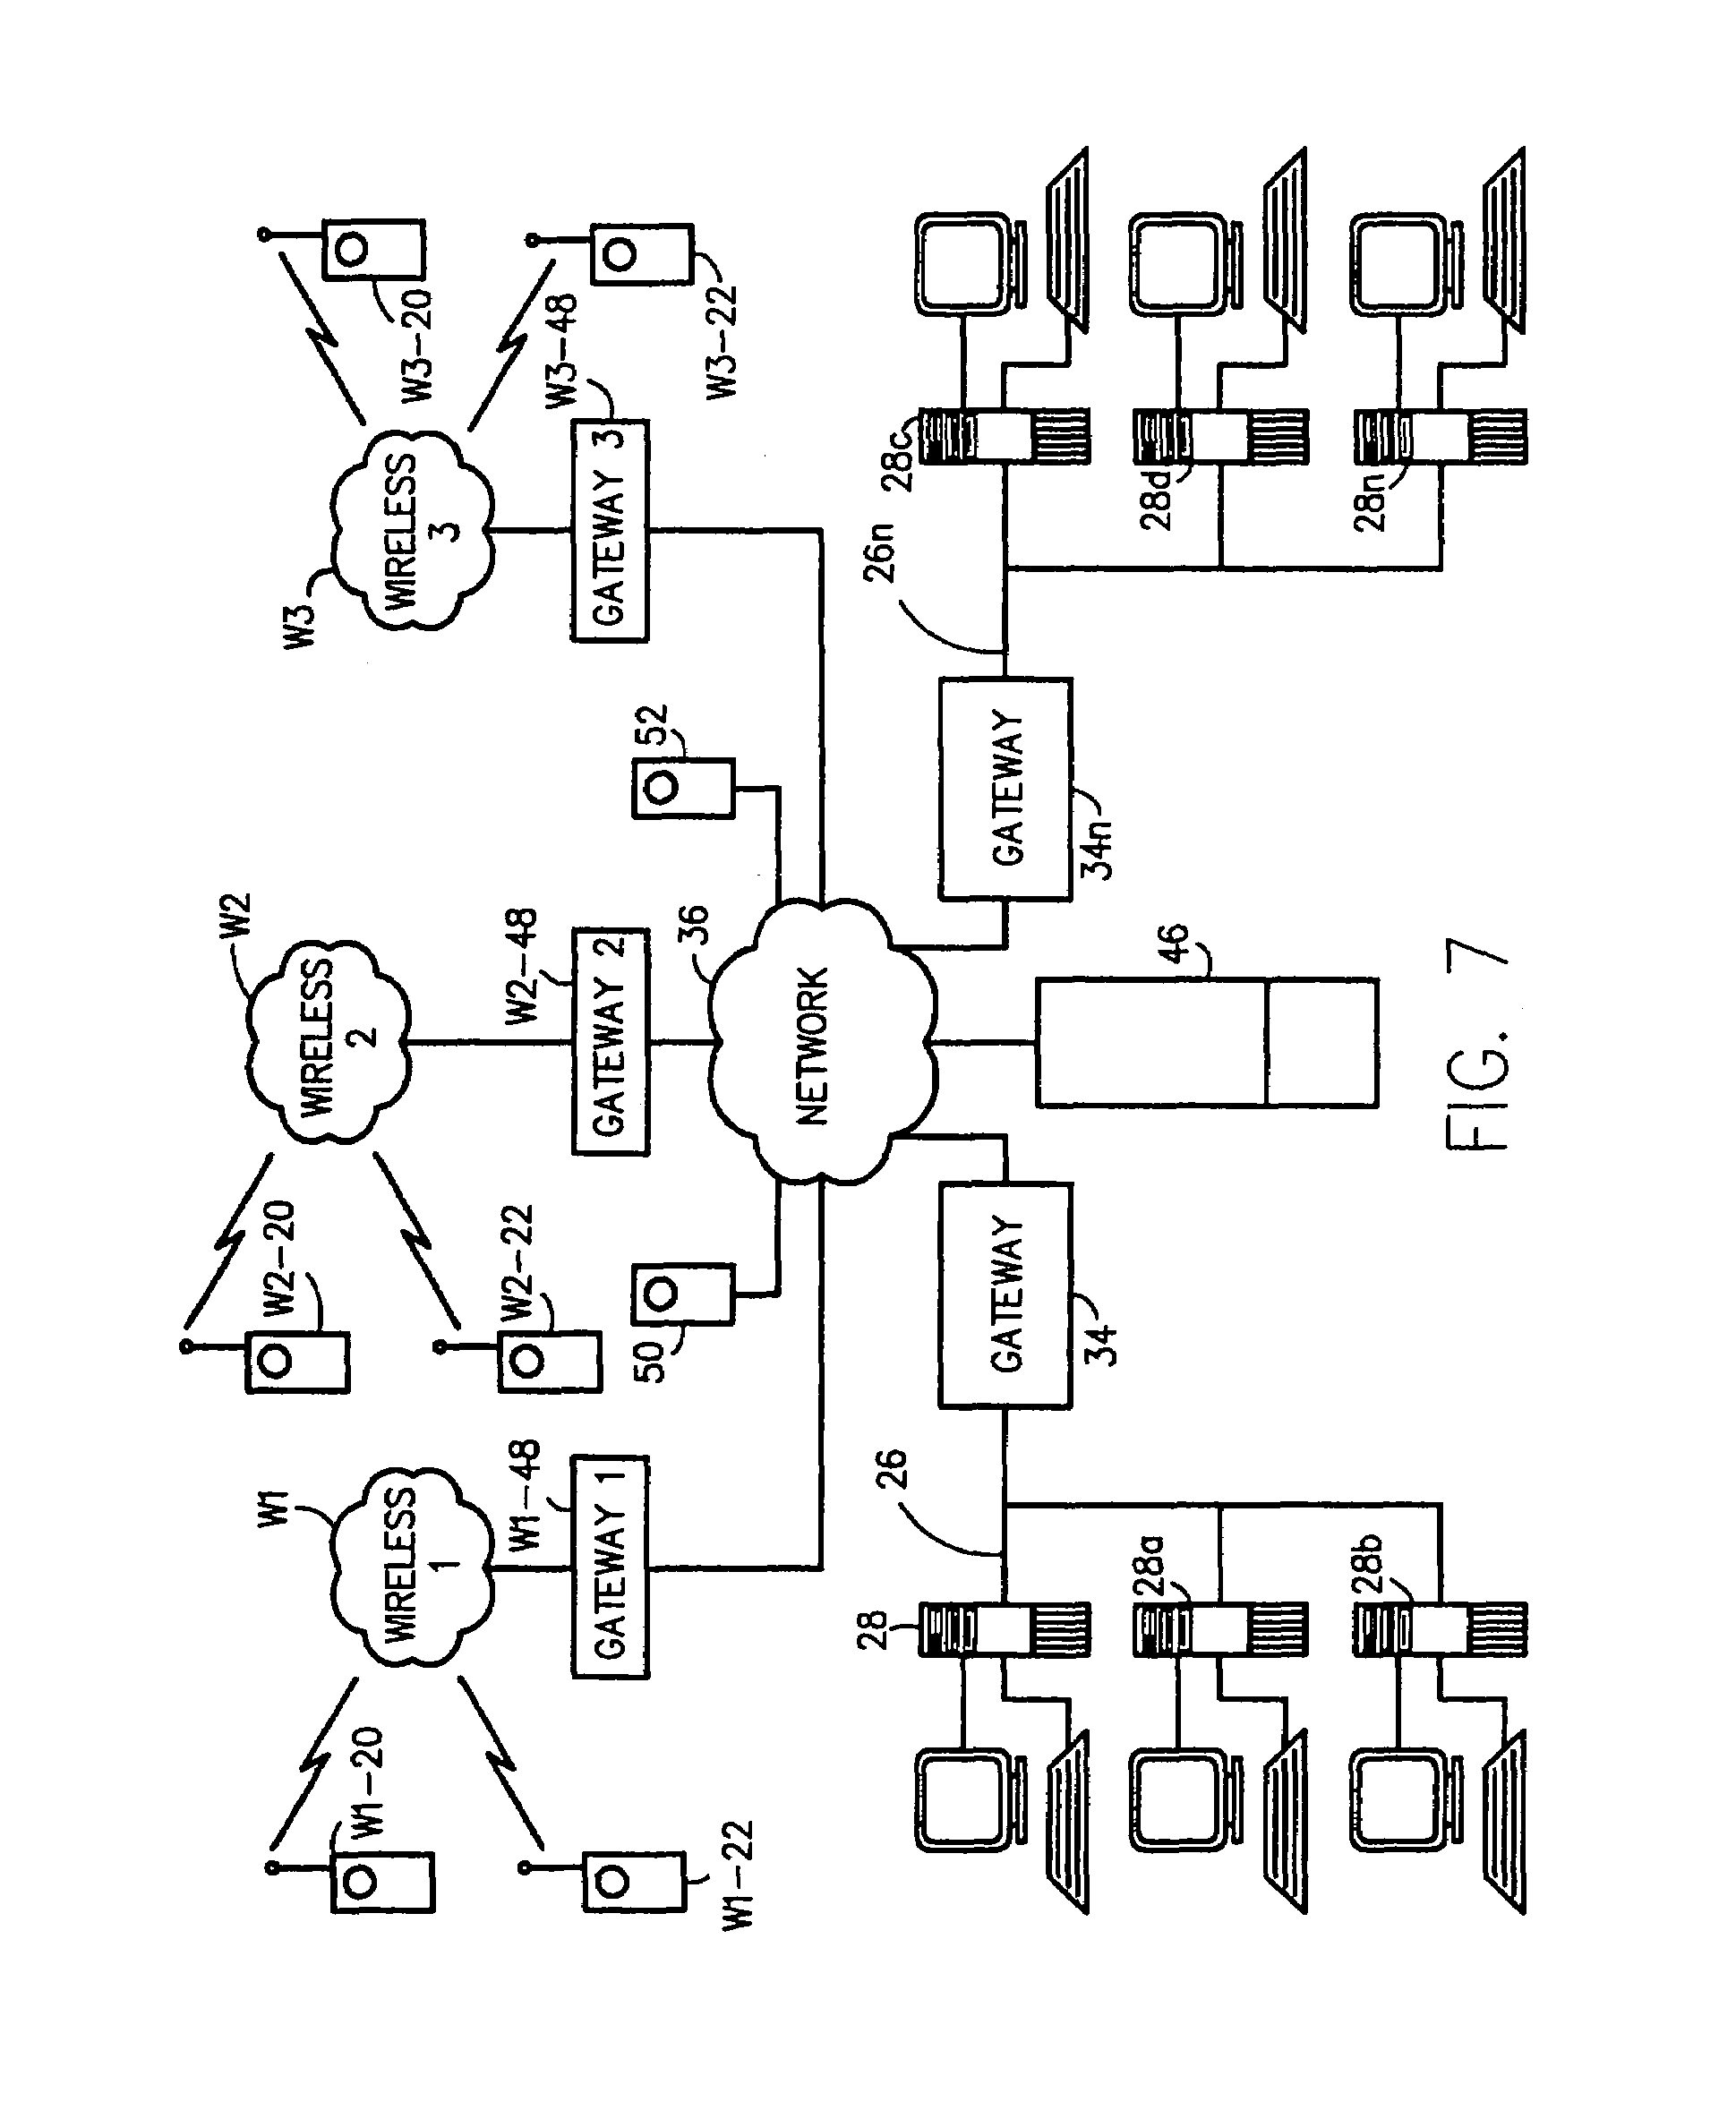 patent us6970183 multimedia surveillance and monitoring system patent drawing